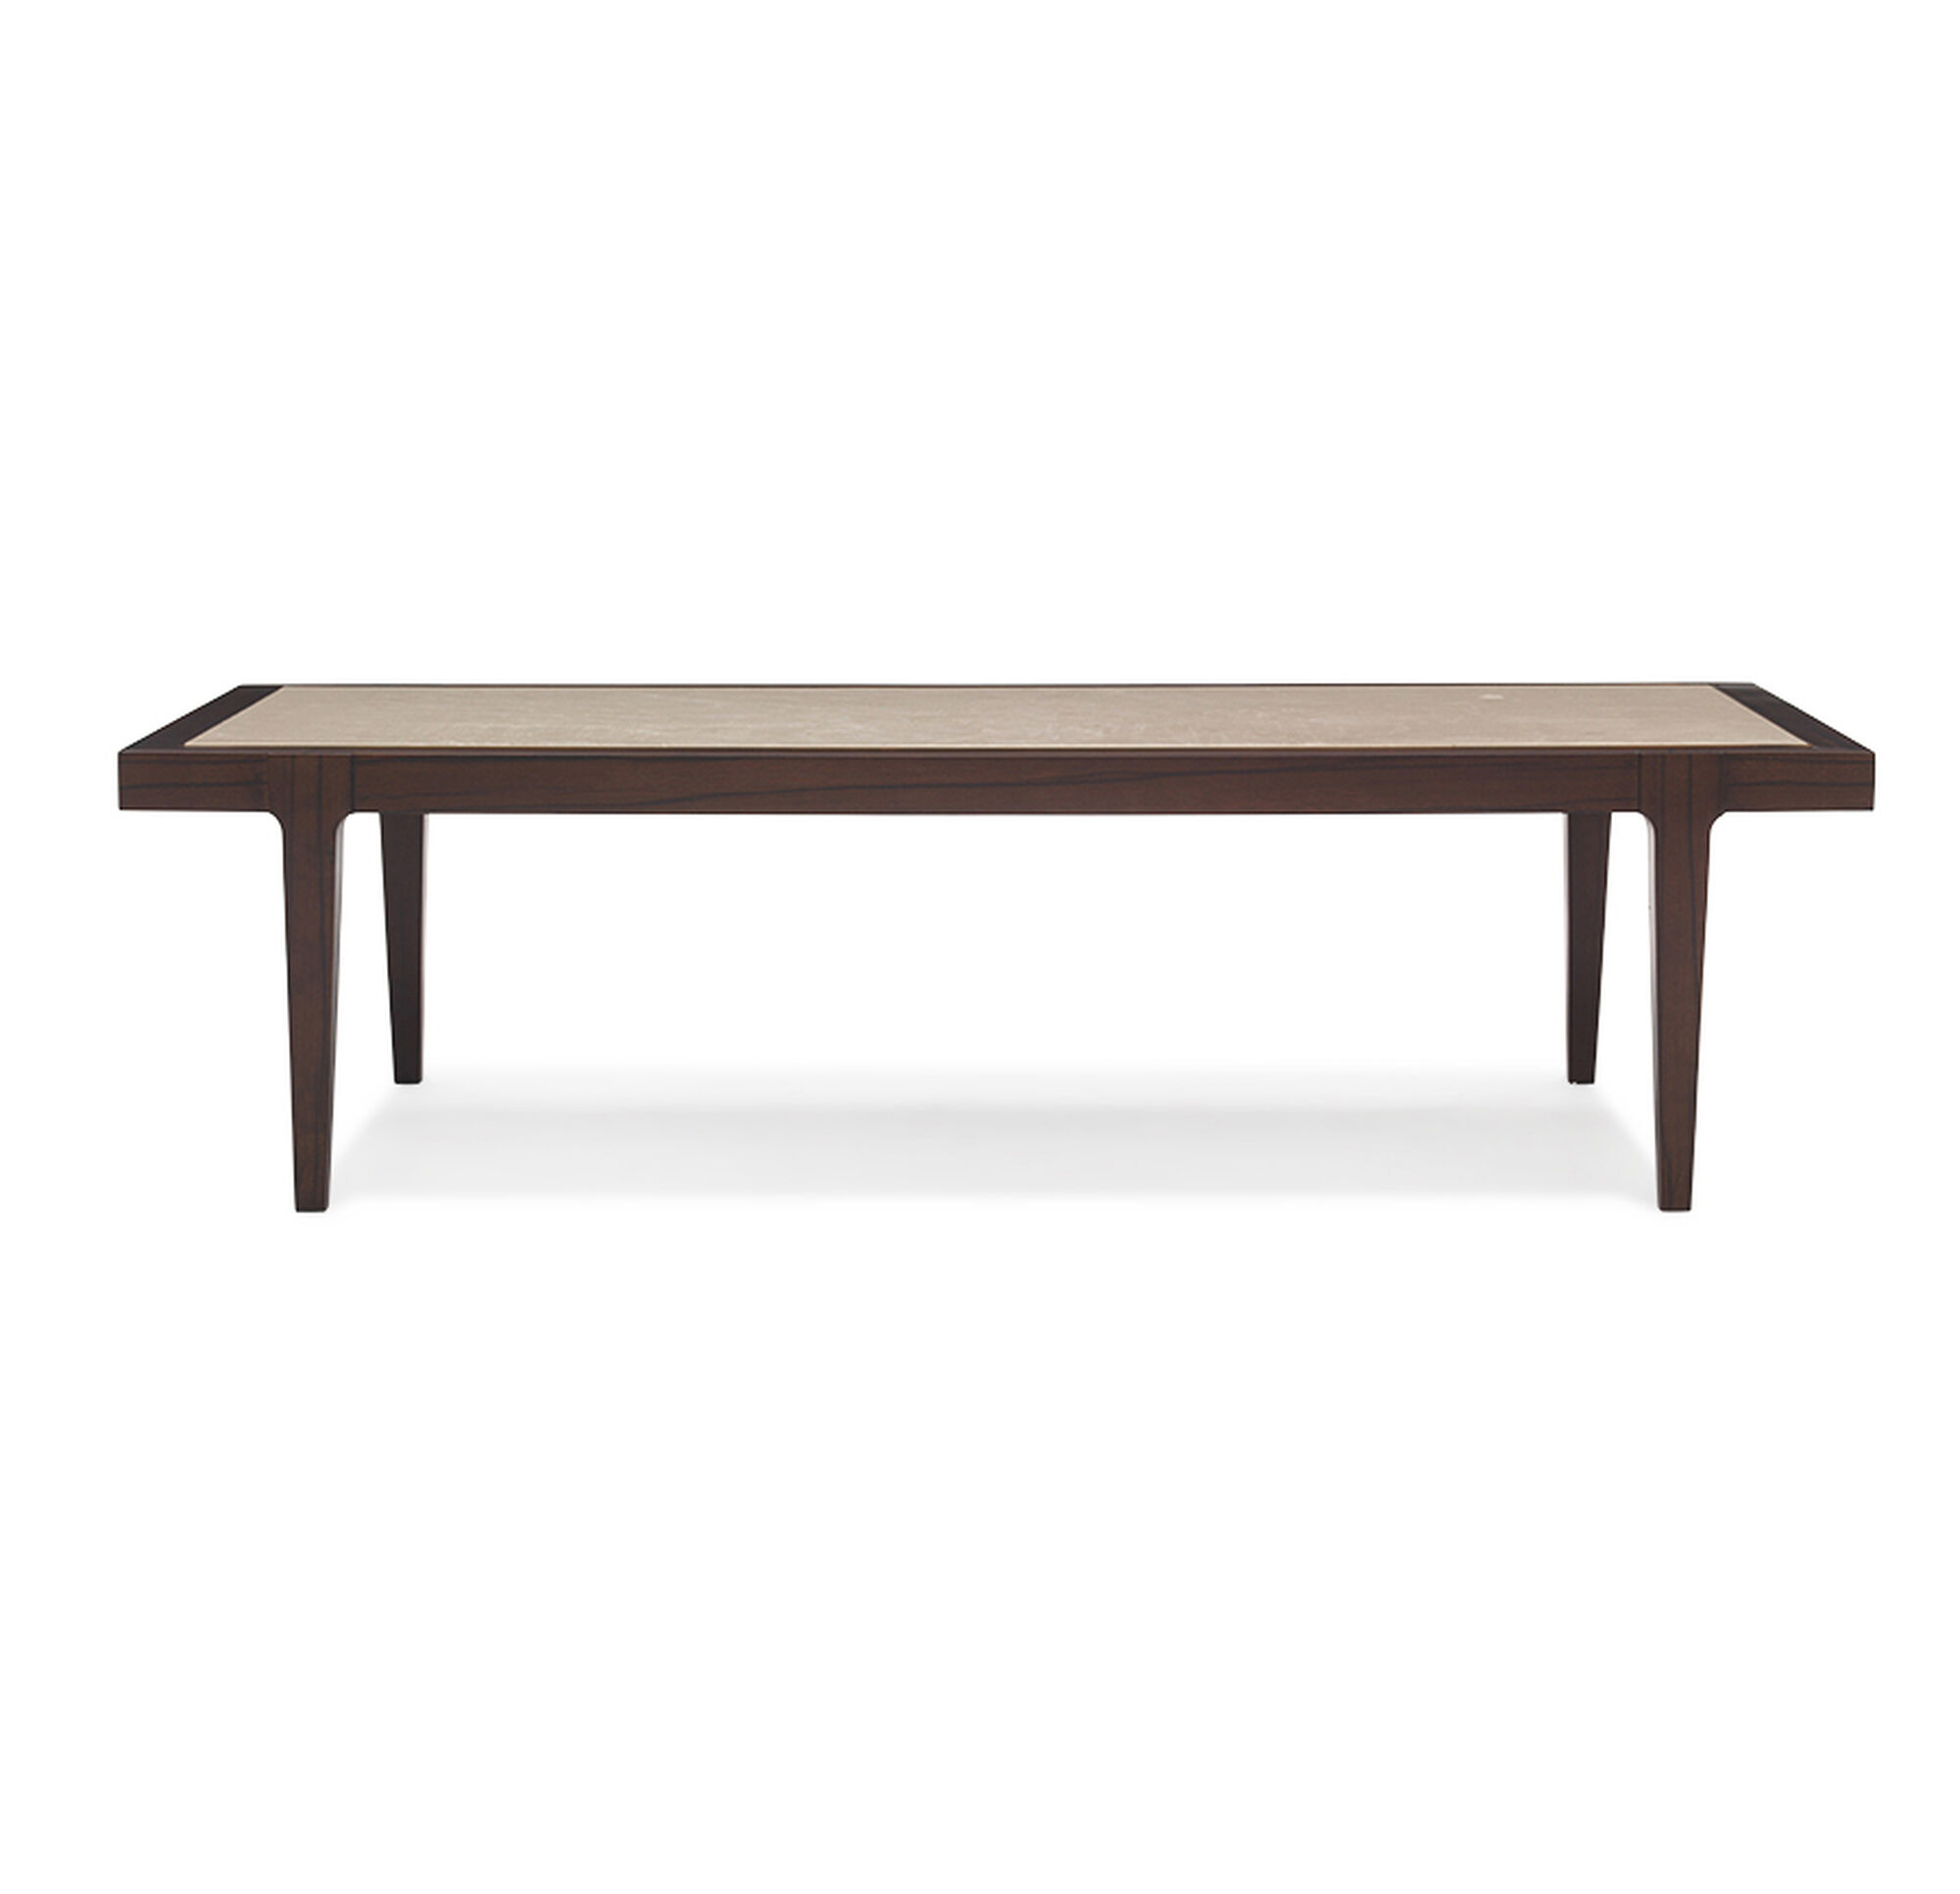 Reeve Mid Century Rectangular Coffee Table: REEVE RECTANGLE COCKTAIL TABLE